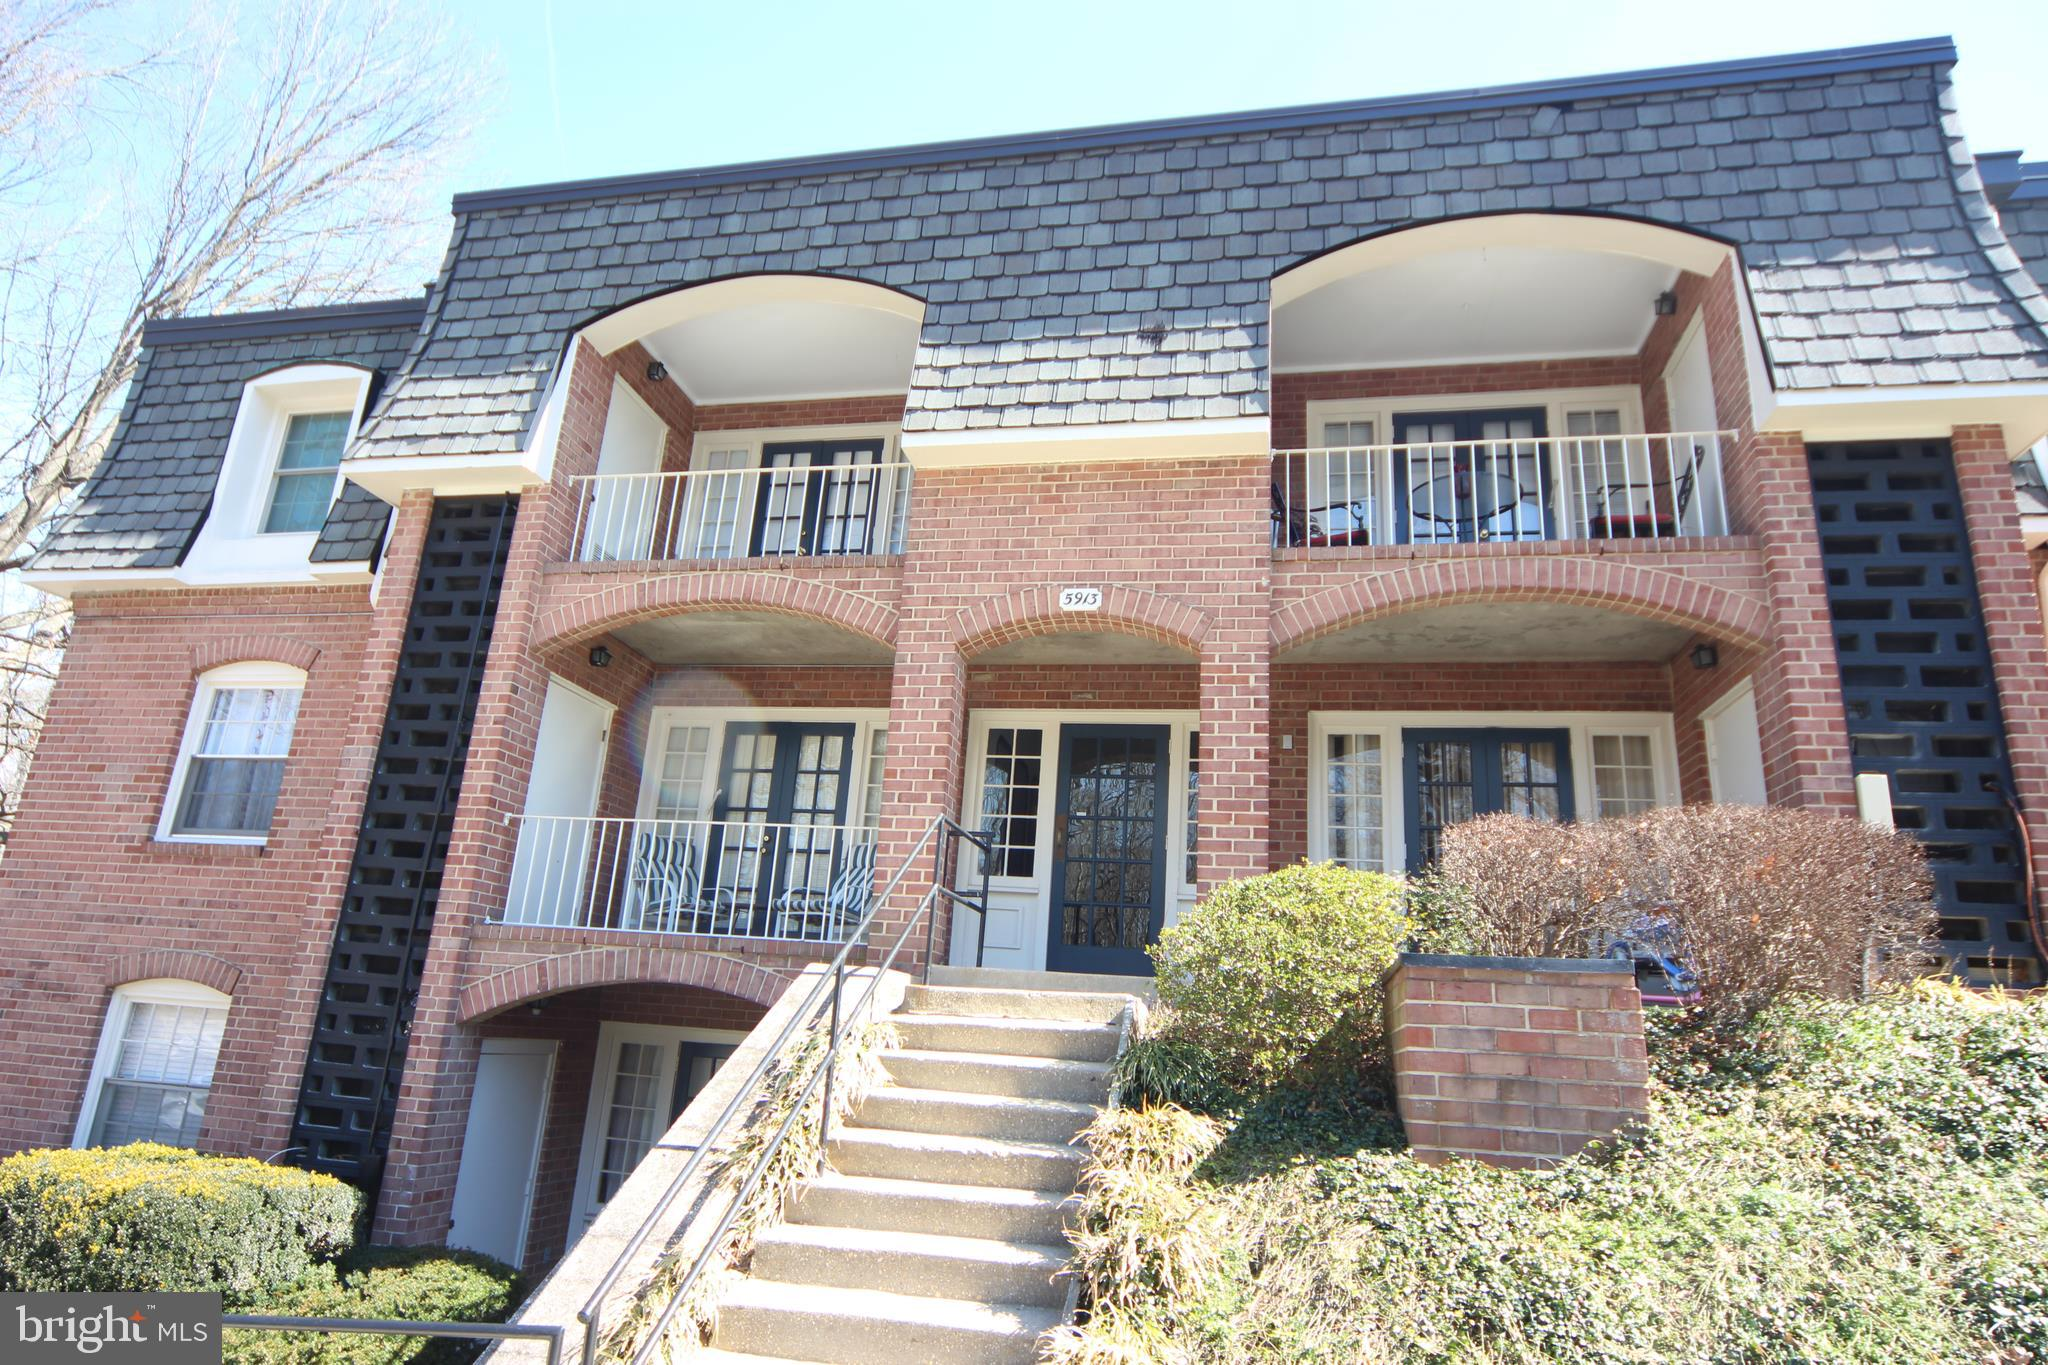 OPEN Saturday 3/16 and Sunday 3/17 1-4PM*Top Floor 1 bedroom located just across from the community pool & management office*Fresh paint throughout*New Carpet just installed*Priced $13K below most recent same model under contract*Nice balcony*Low condo fee includes:Gas Heat, water & sewer, exterior building maintenance, 2 pools,  tennis, tot-lots, party rooms, etc*This building is unique in that the laundry room is in the basement of the building & there is also a dedicated storage unit in the laundry area too*Also there is no assigned parking in this area as there is tons of parking*Bus at the corner express to Pentagon*Lots of nearby shopping & dining options*Walking path to Lake Accotink